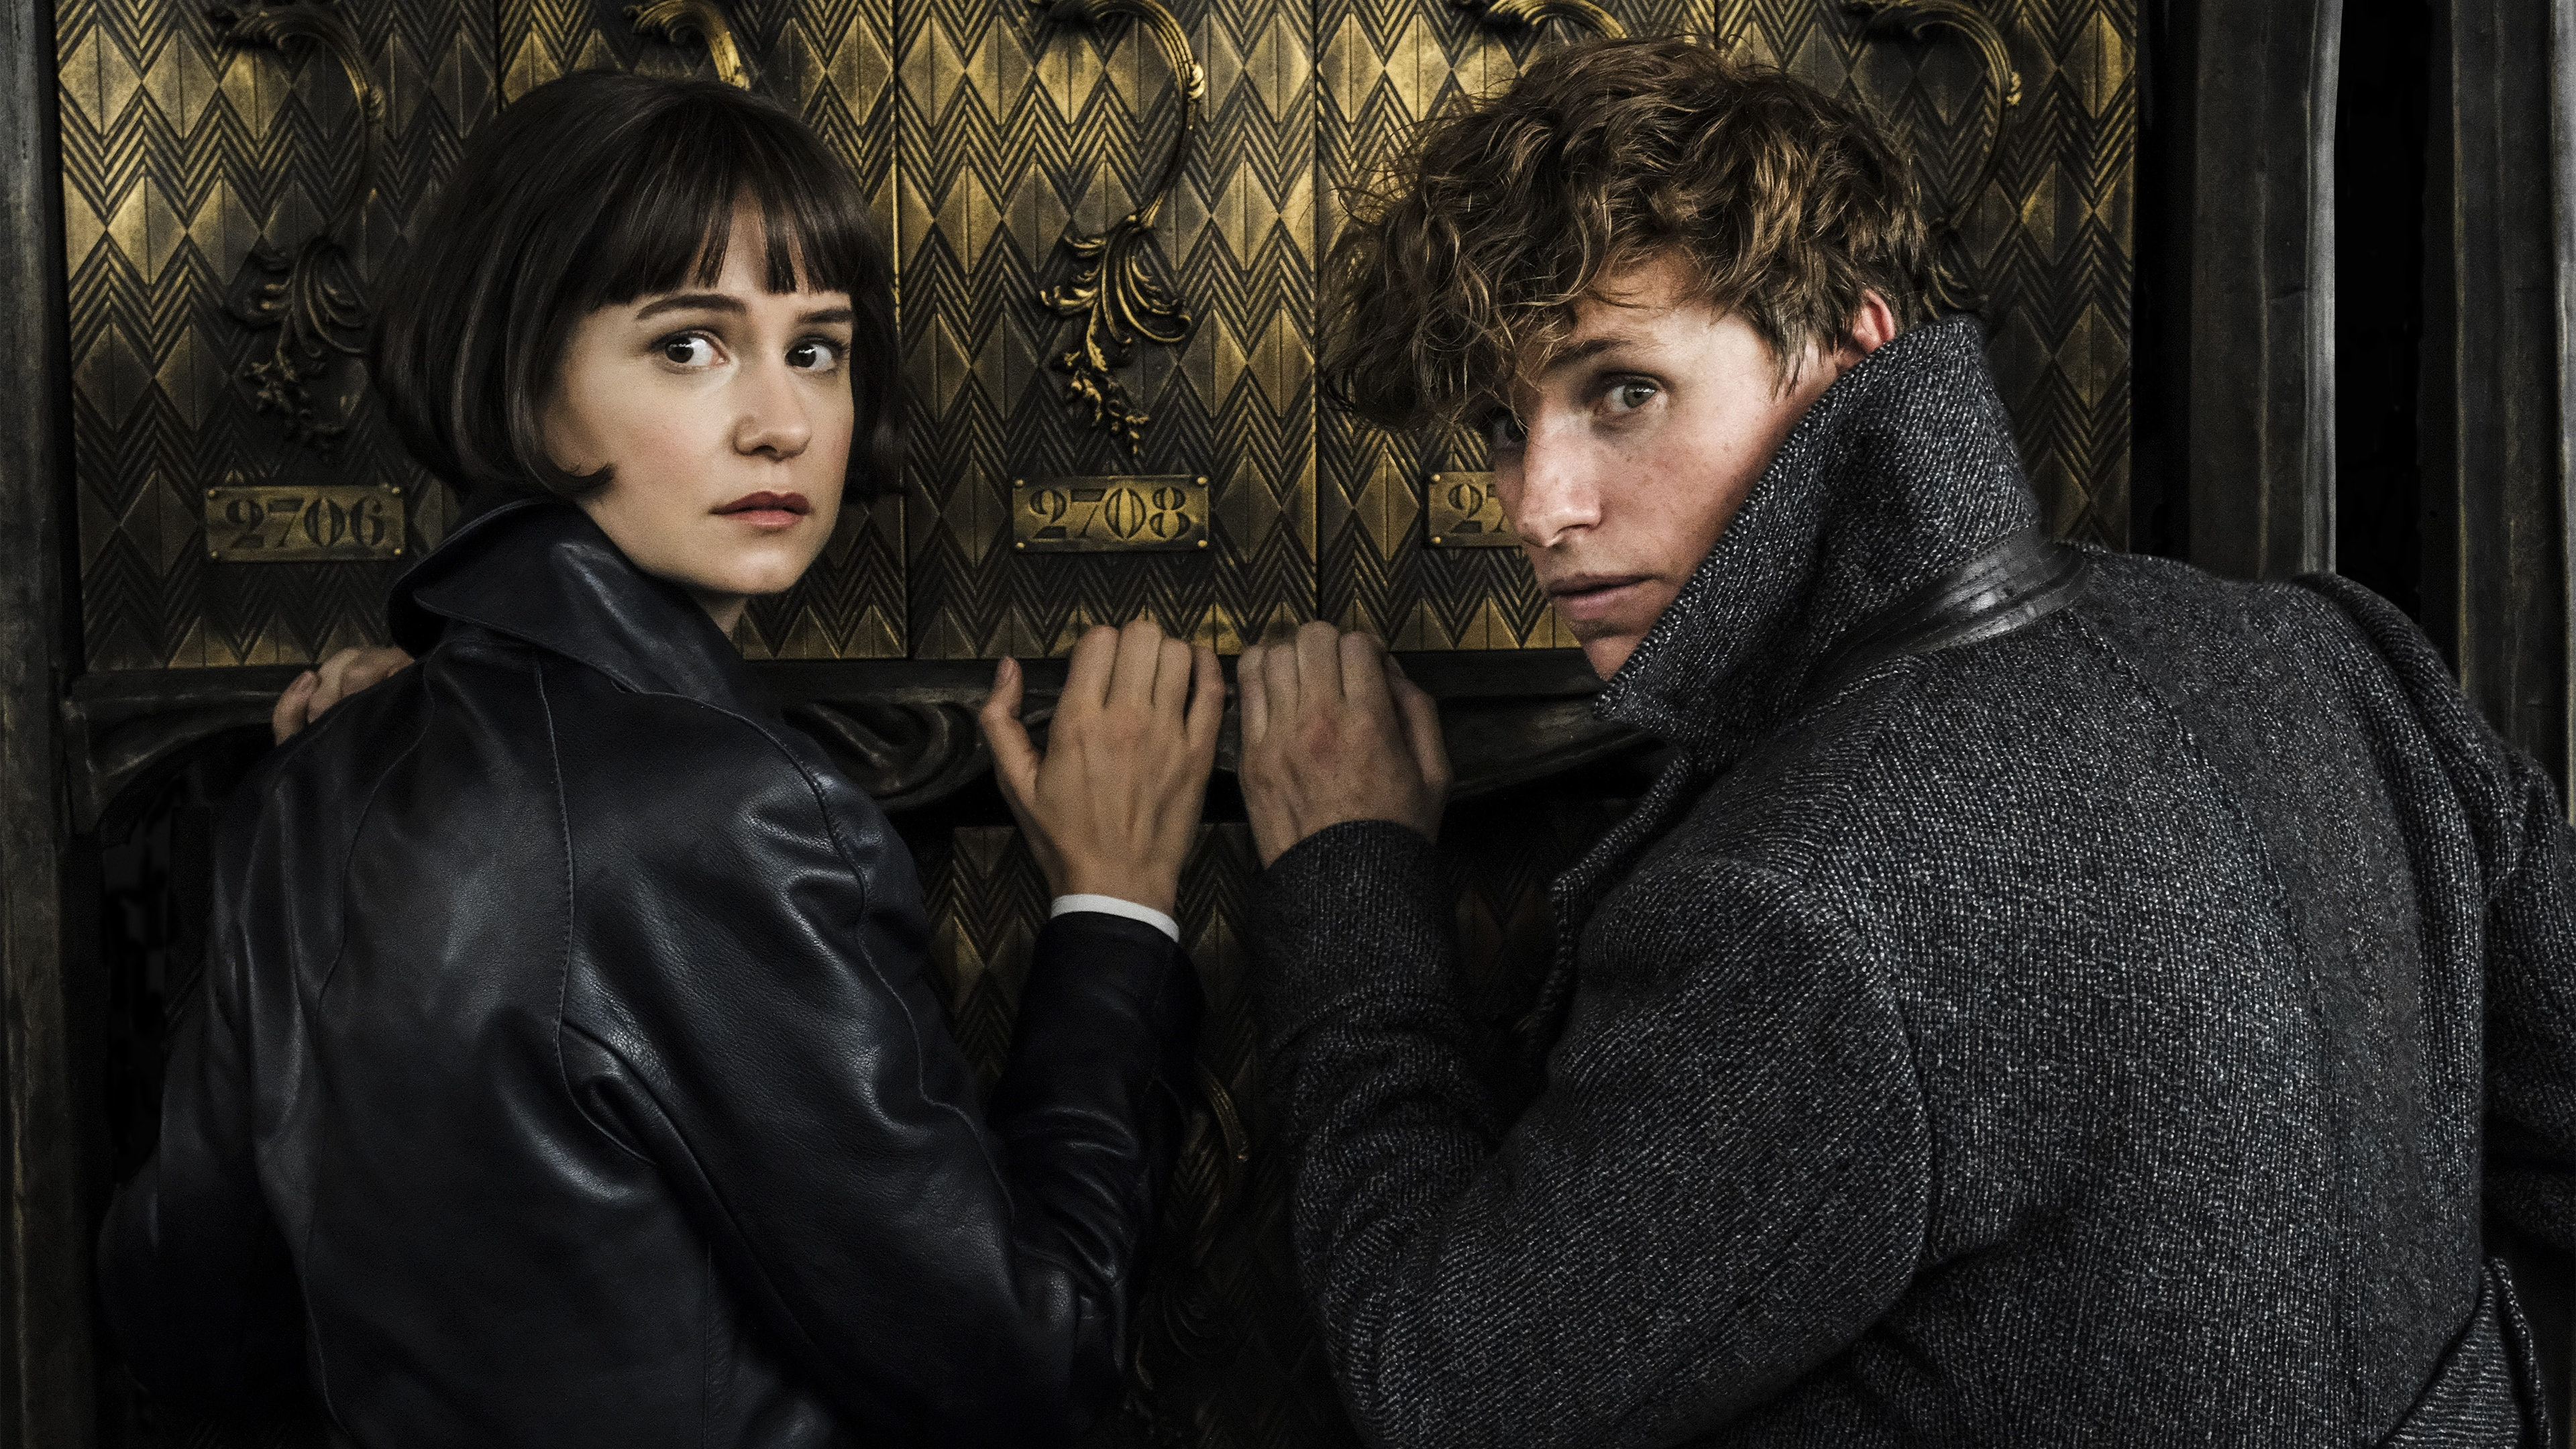 Fantastic Beasts The Crimes Of Grindelwald Movie 2018